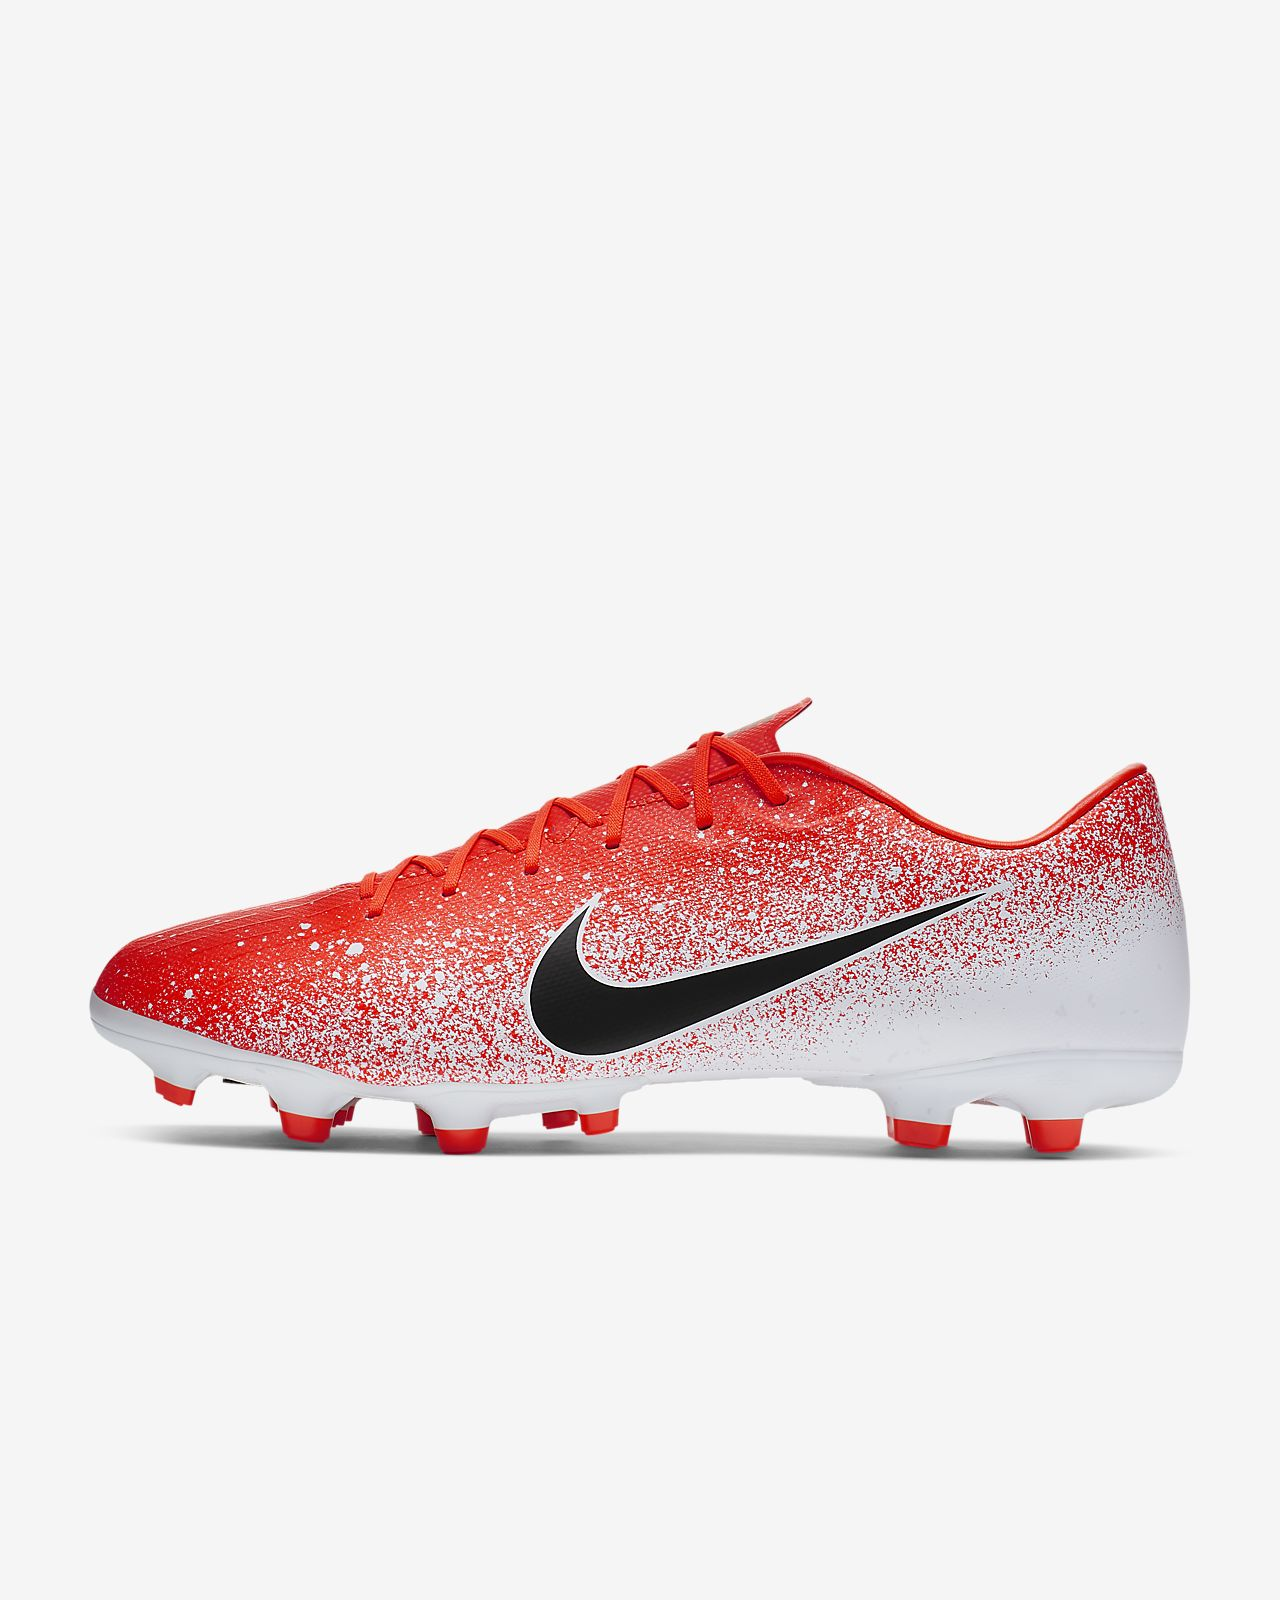 cf74b24e6b5 Nike Vapor 12 Academy MG Multi-Ground Soccer Cleat. Nike.com